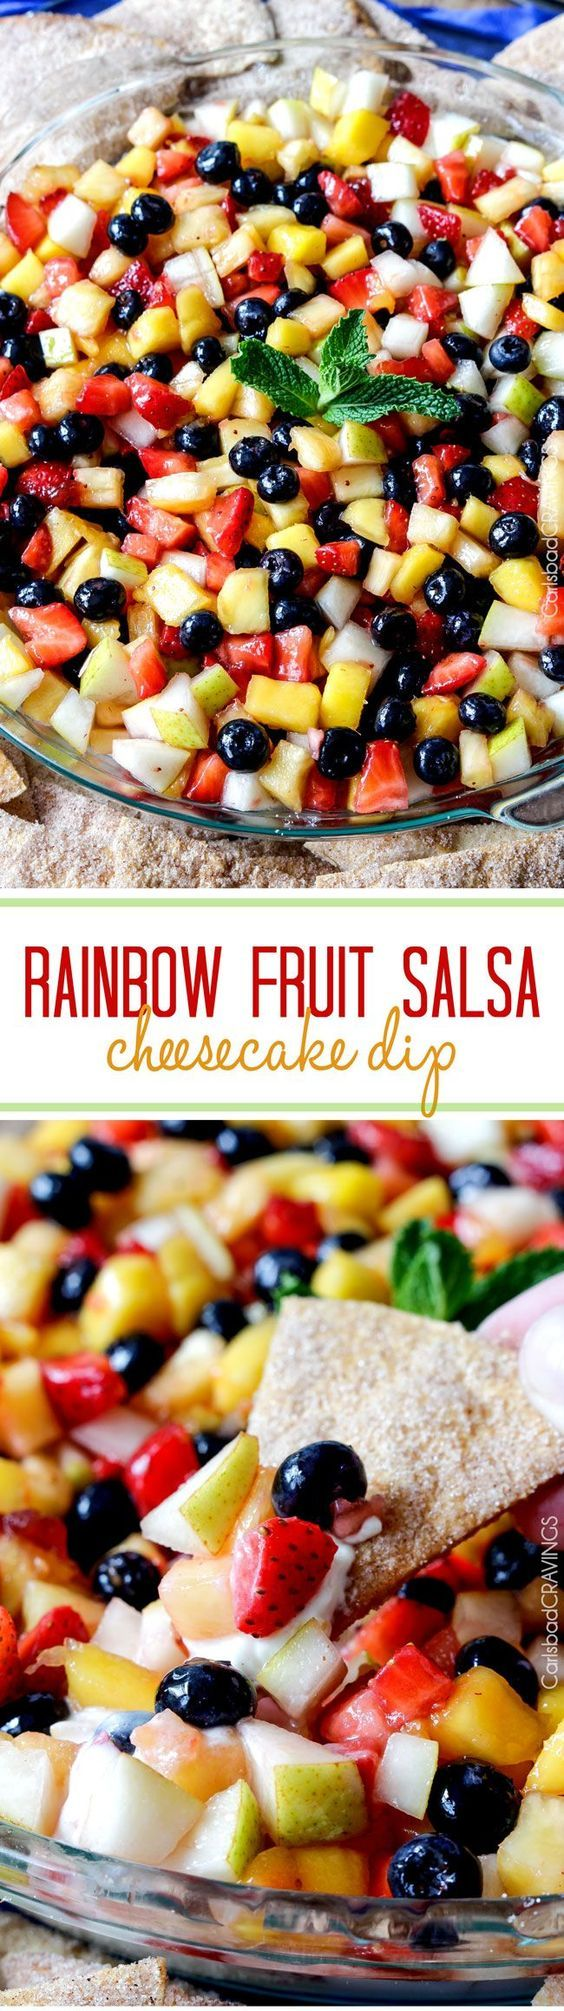 Light and refreshing Rainbow Fruit Salsa (No Bake) Cheesecake Dip (with Churro Chips) is the perfect make ahead dessert/appetizer that no one will be able to stop munching!: